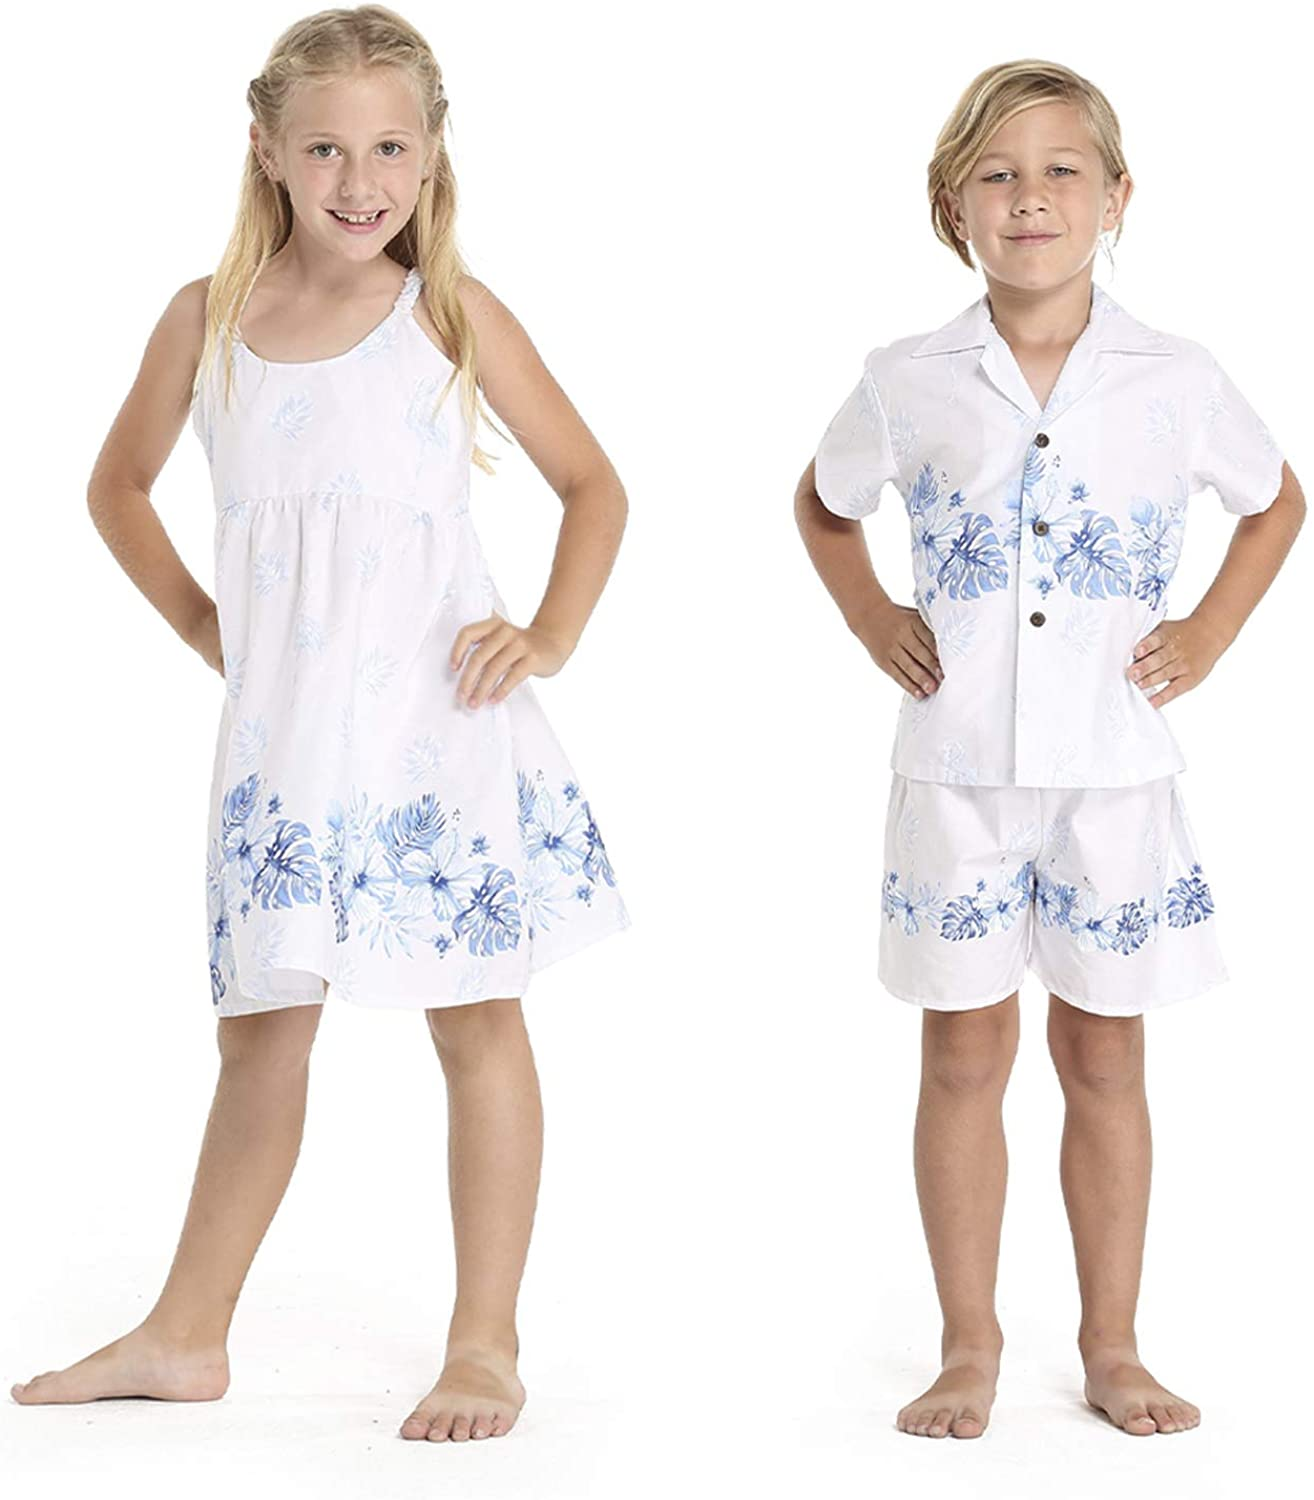 Matching Boy and Girl Siblings Hawaiian Luau Outfits in Various Patterns